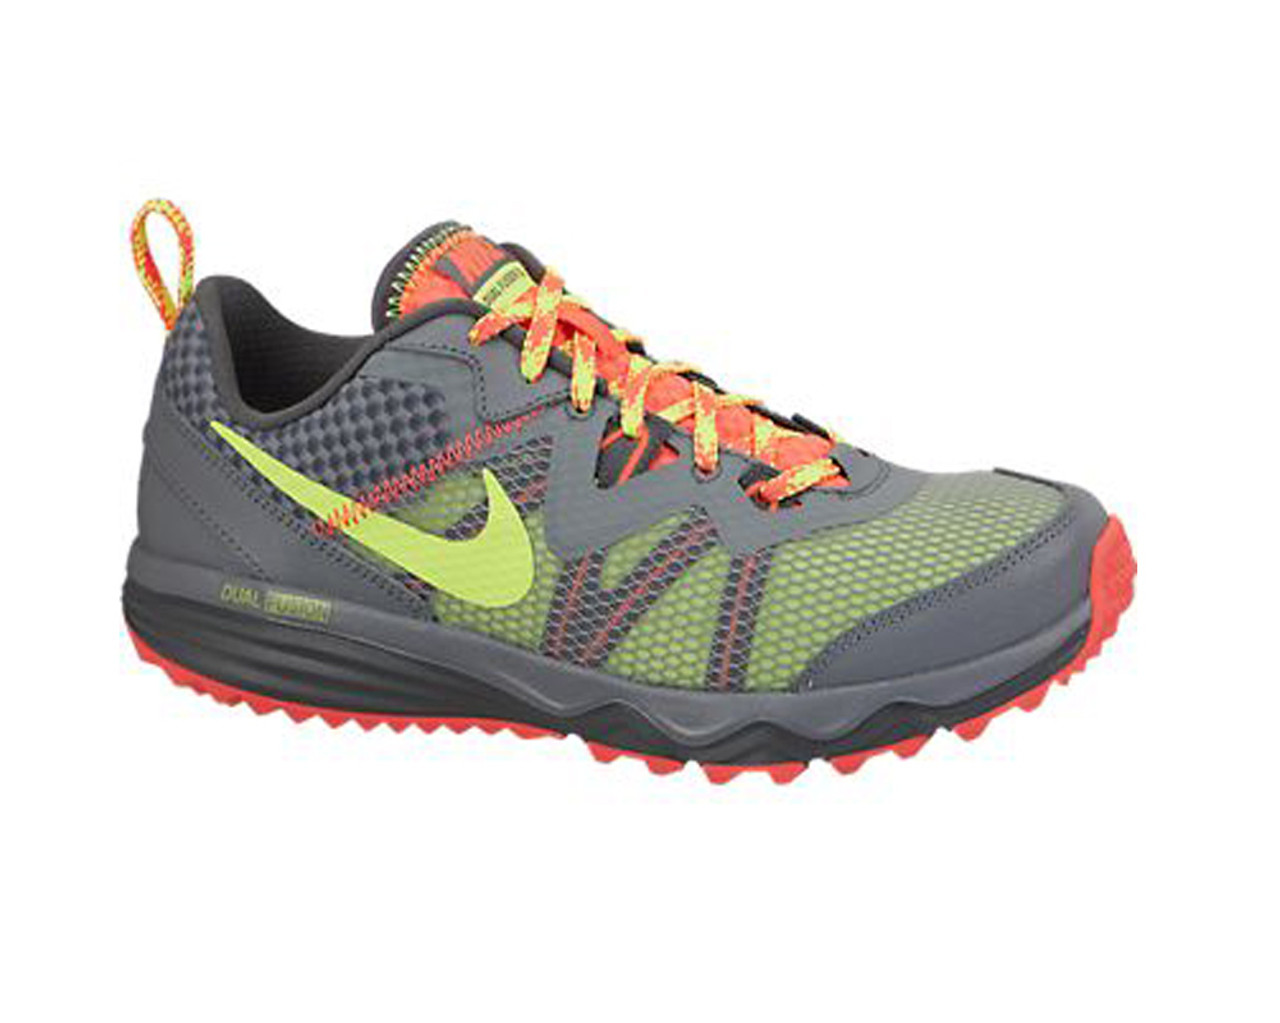 227877f13fc Nike Women s Dual Fusion Trail Running Shoes Grey Punch Volt - Shop now